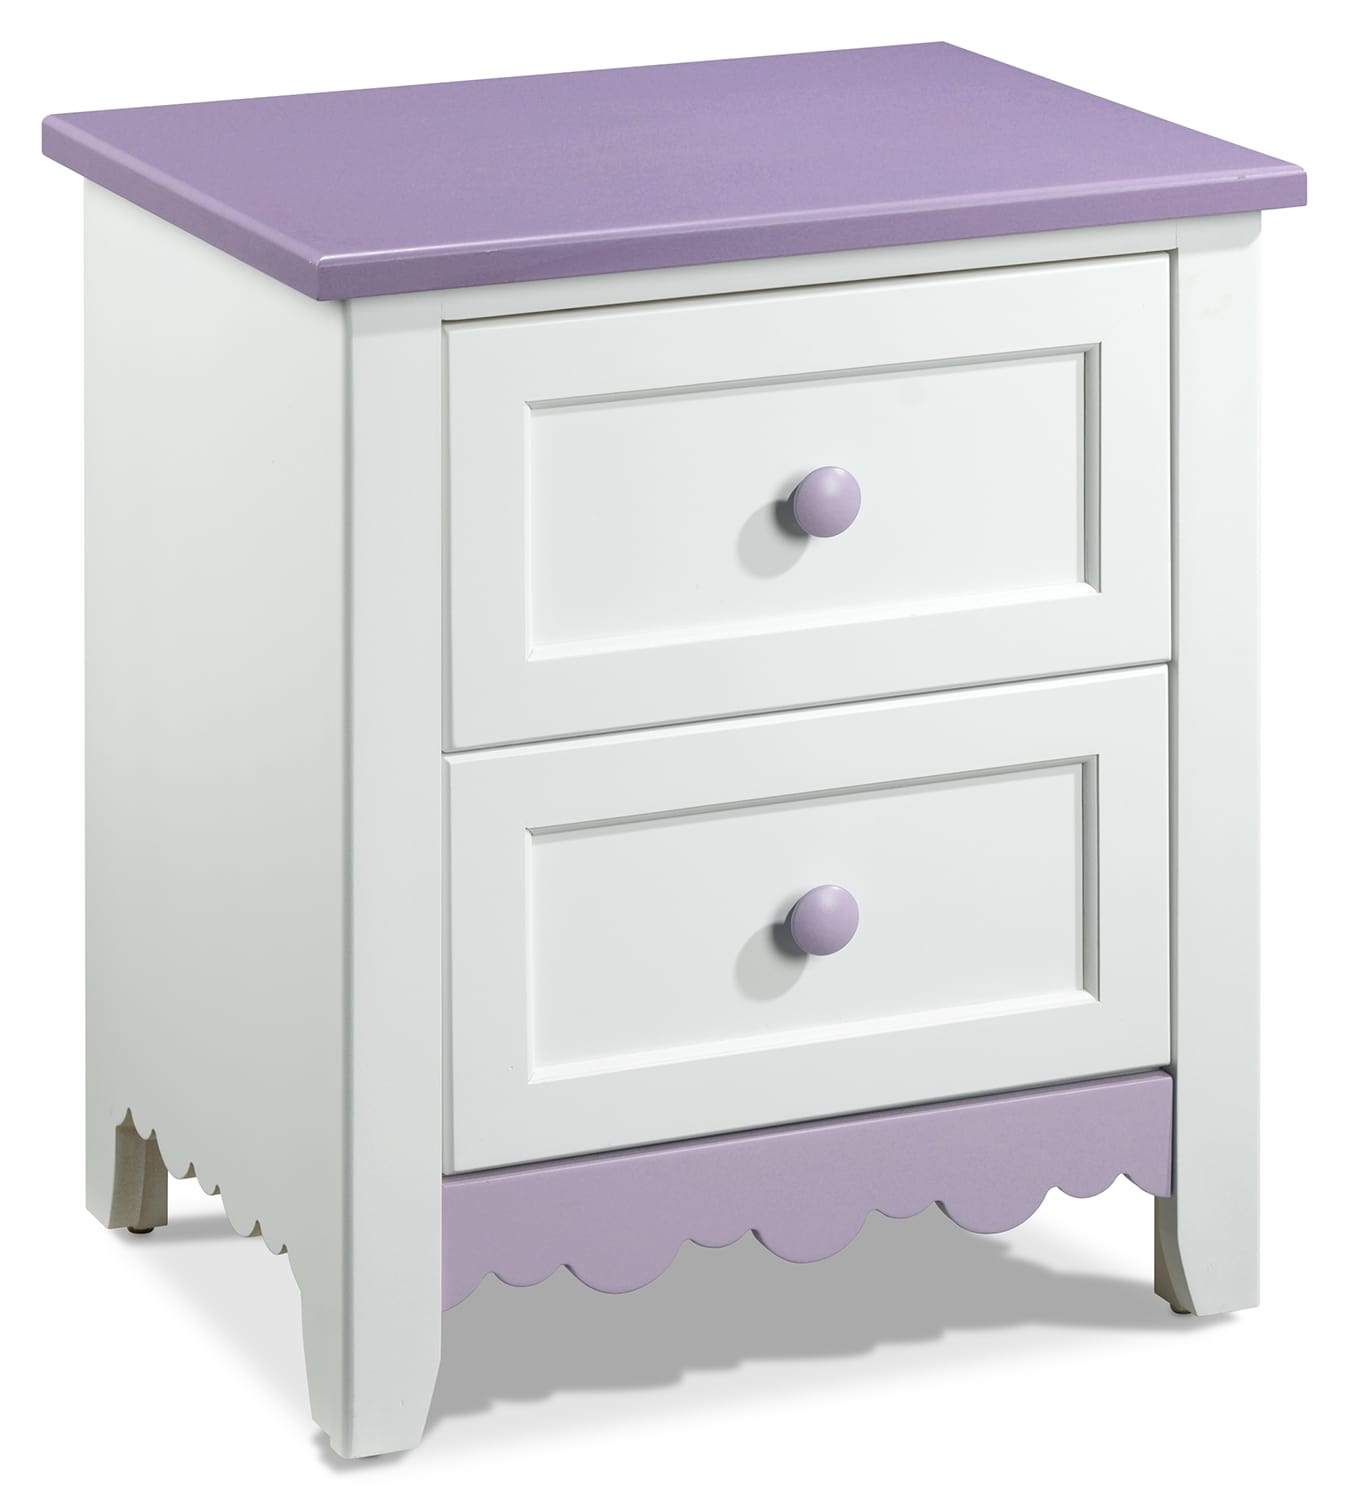 Kids Furniture - Sweetdreams Night Table - White and Lavender